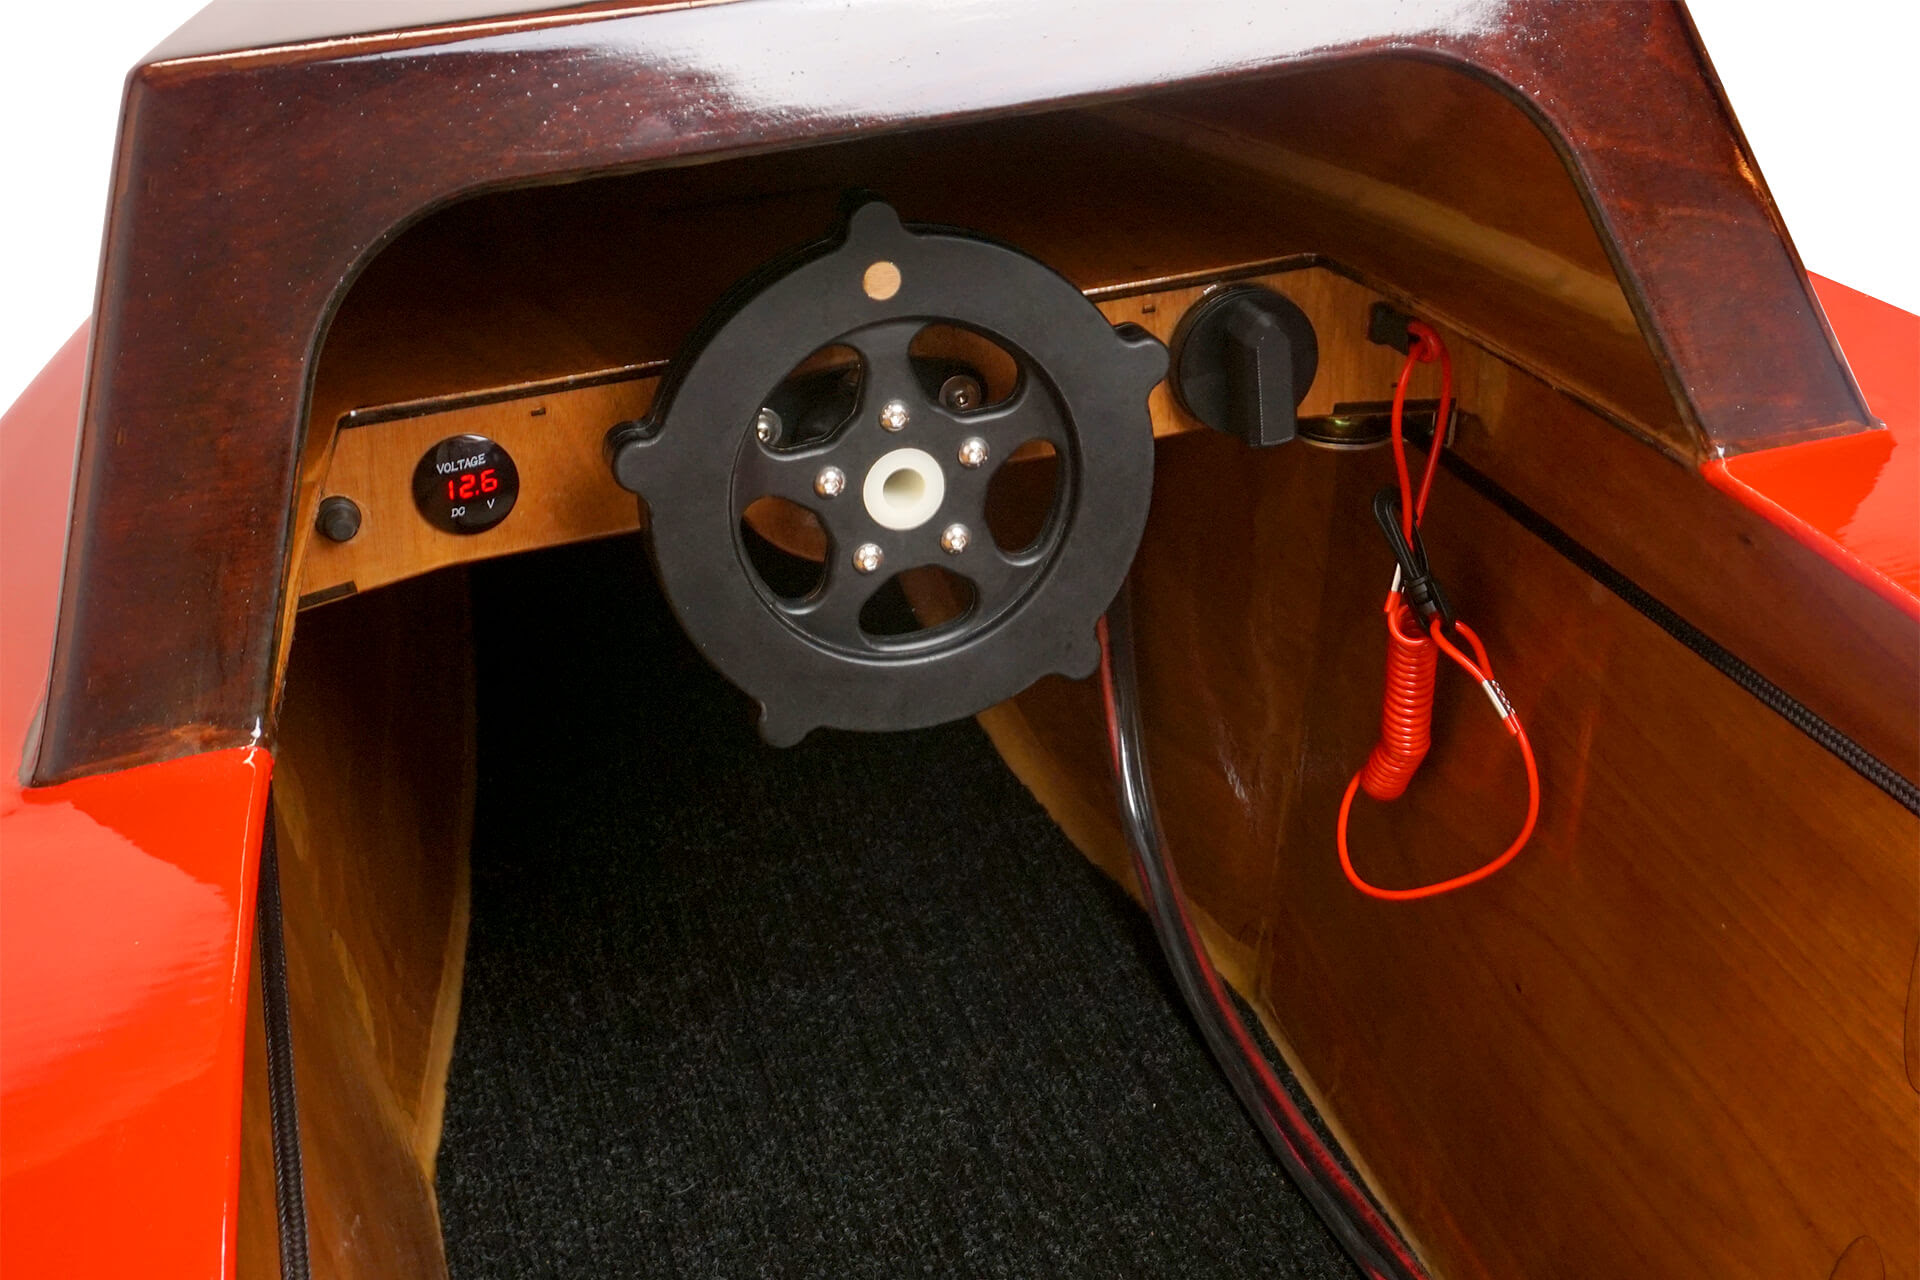 A dashboard view of the mini electric boat, showing off the steering wheel, volt-meter, and dead-mans switch